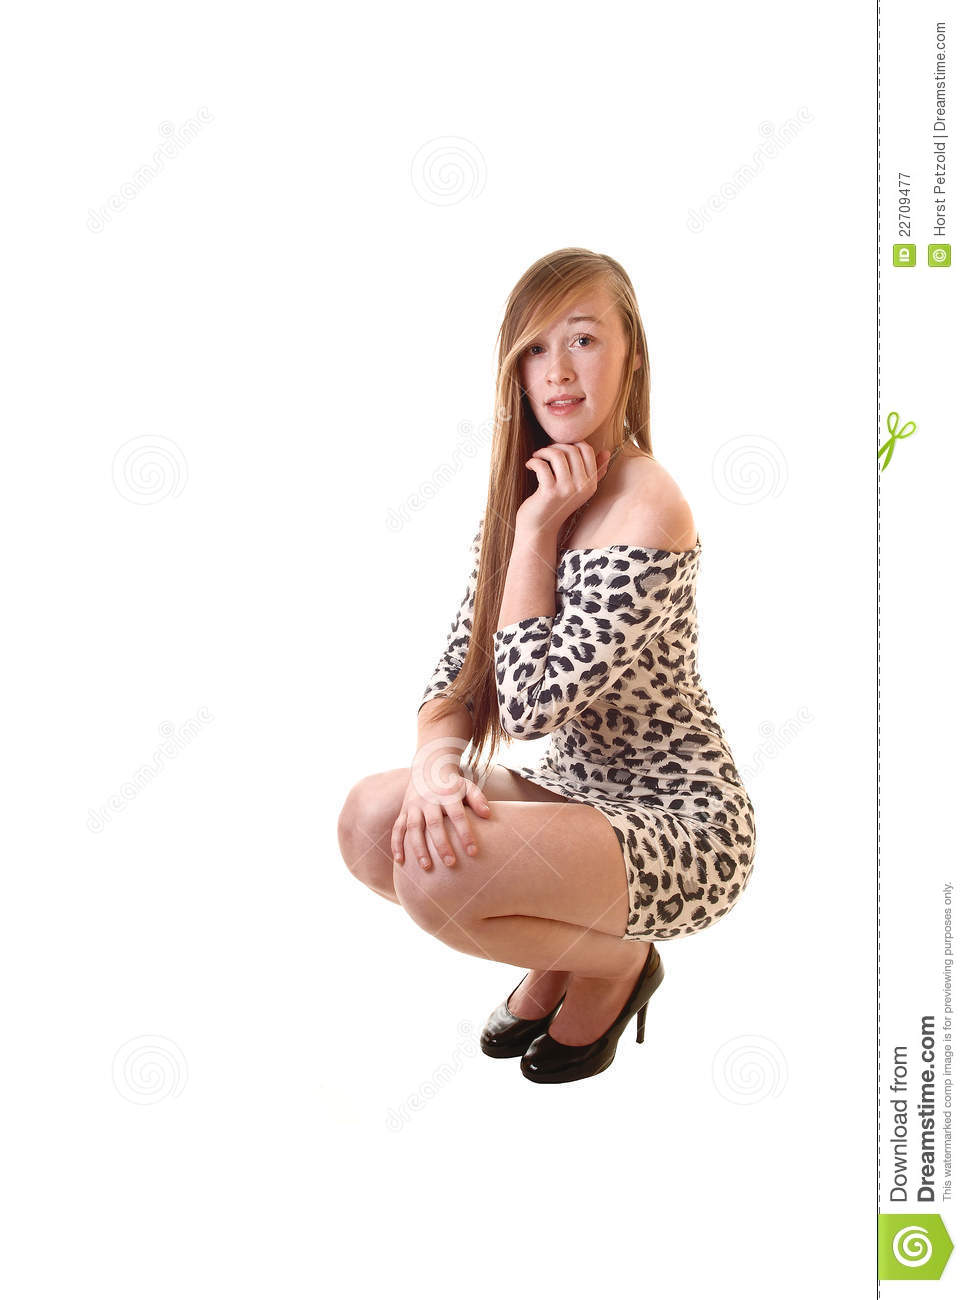 Young woman crouching stock photo. Image of girl, full